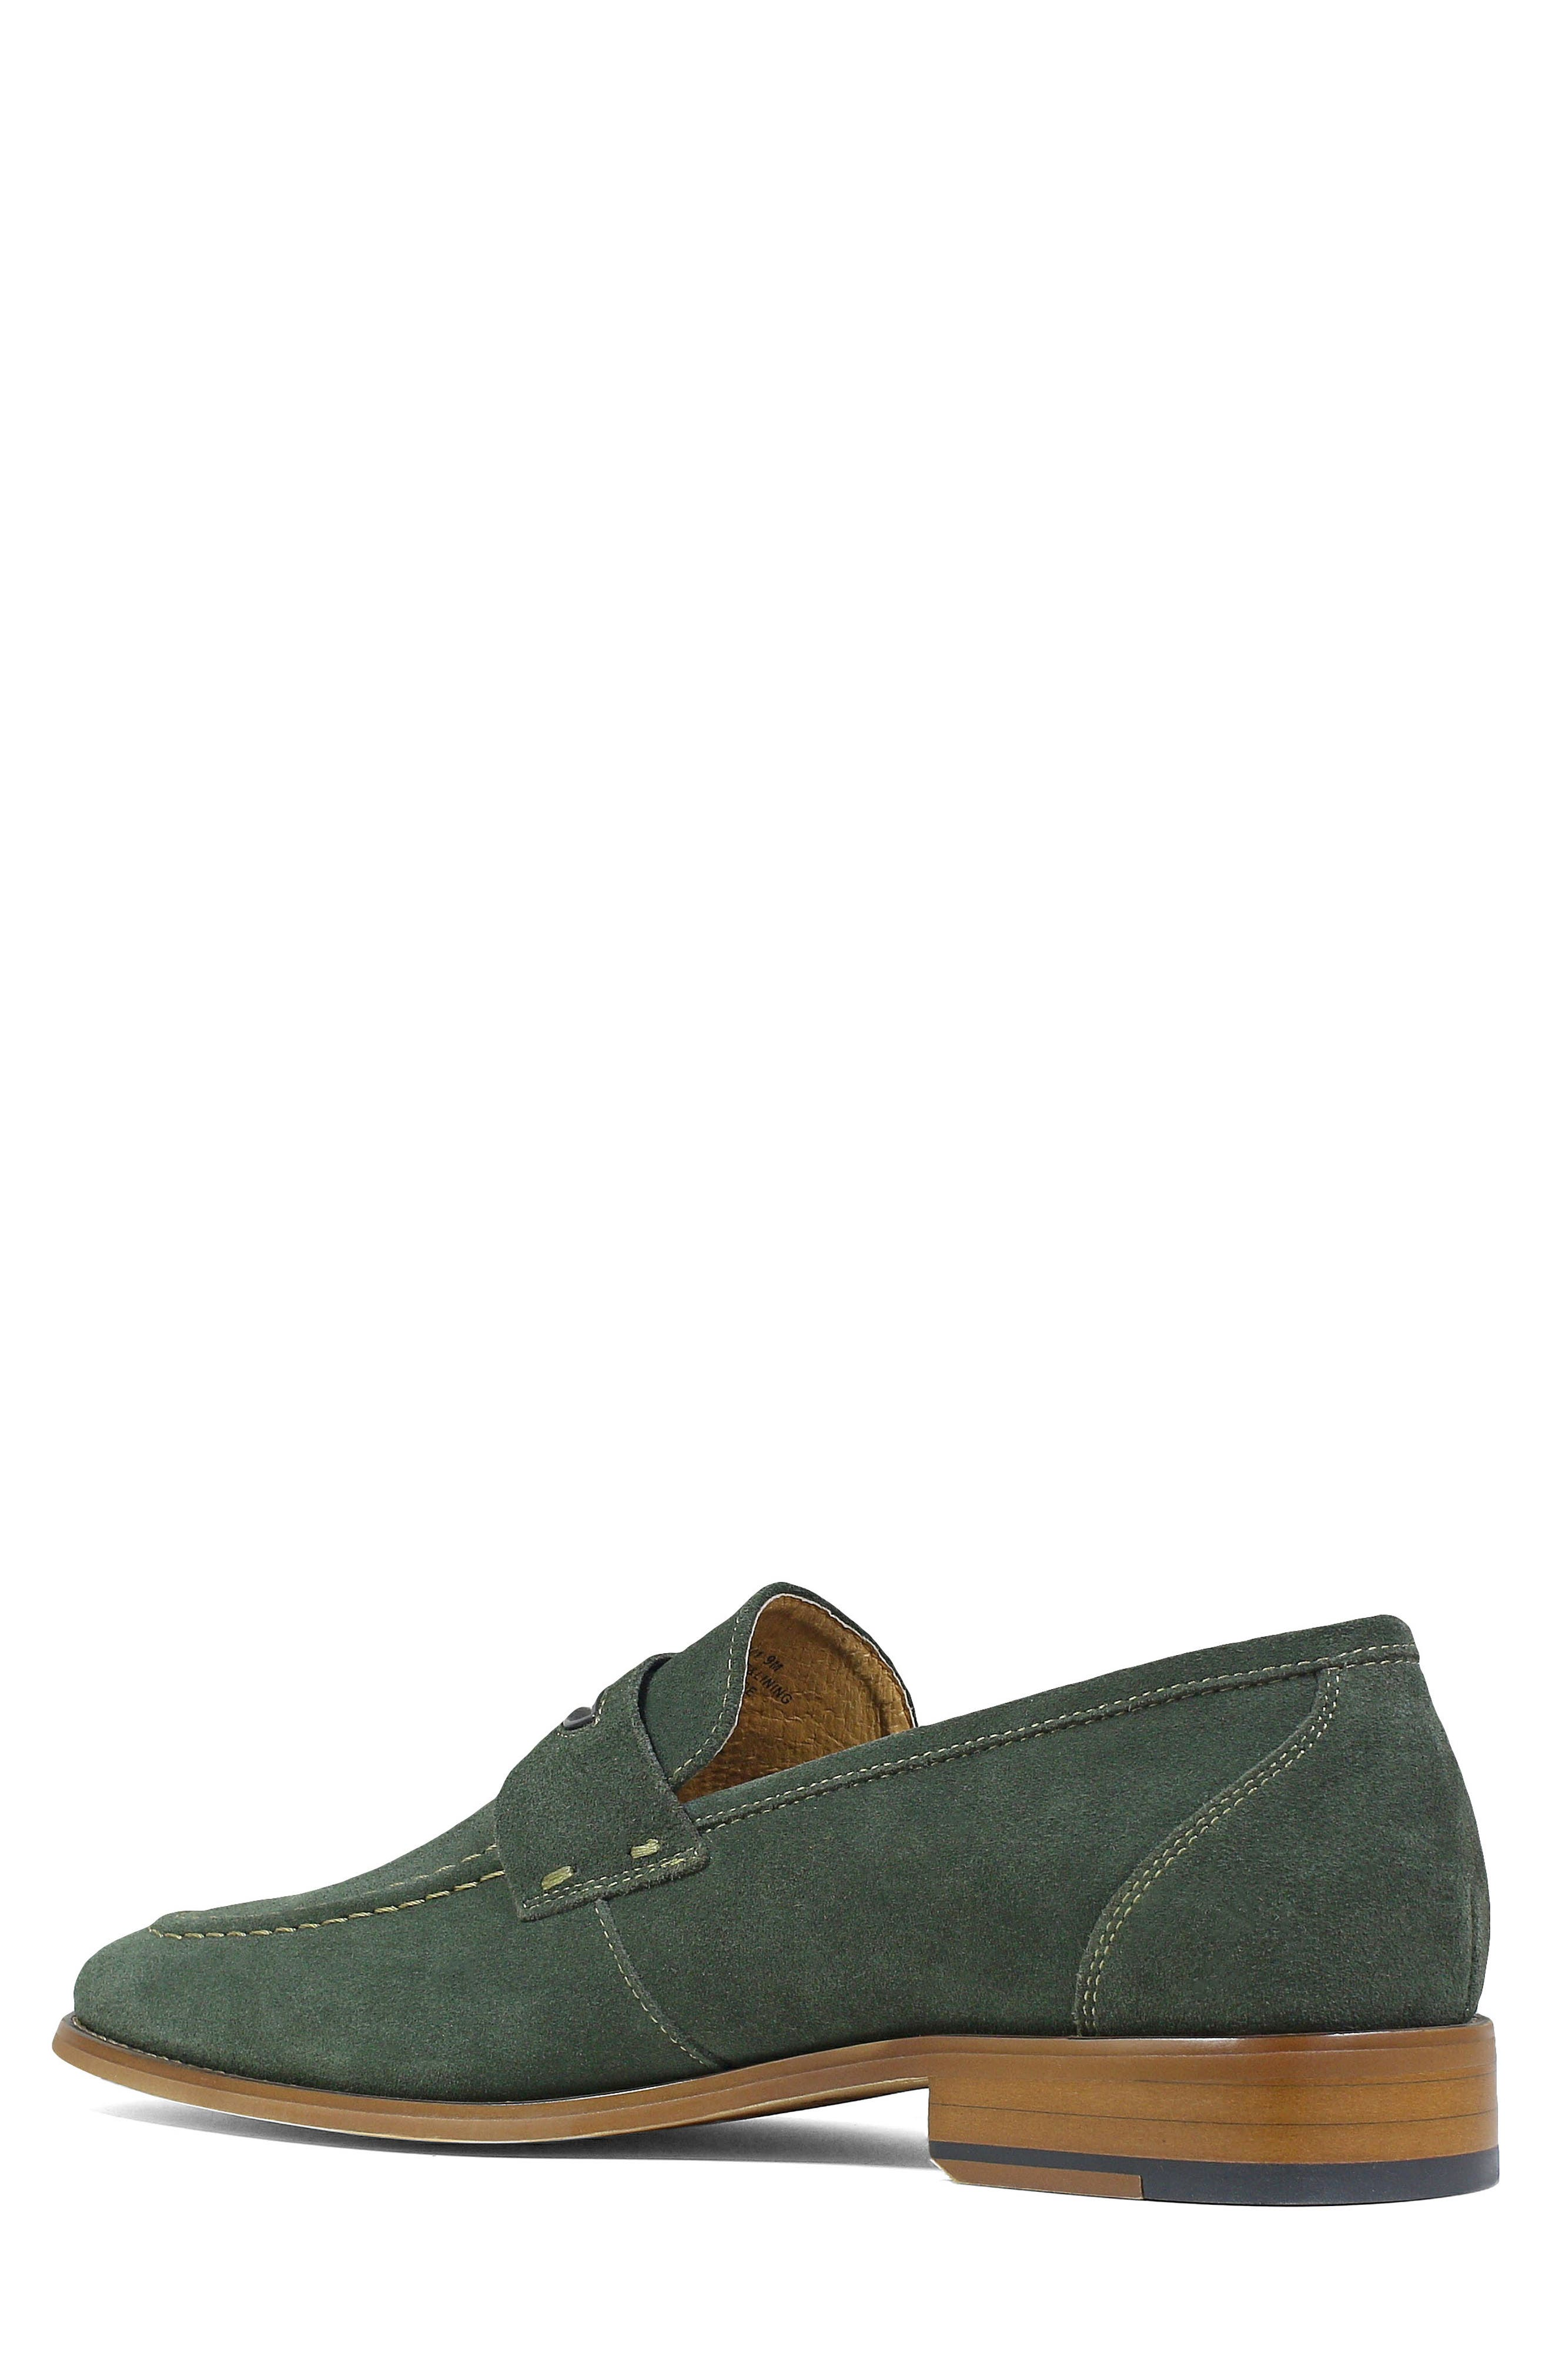 Colfax Apron Toe Penny Loafer,                             Alternate thumbnail 2, color,                             DARK GREEN SUEDE